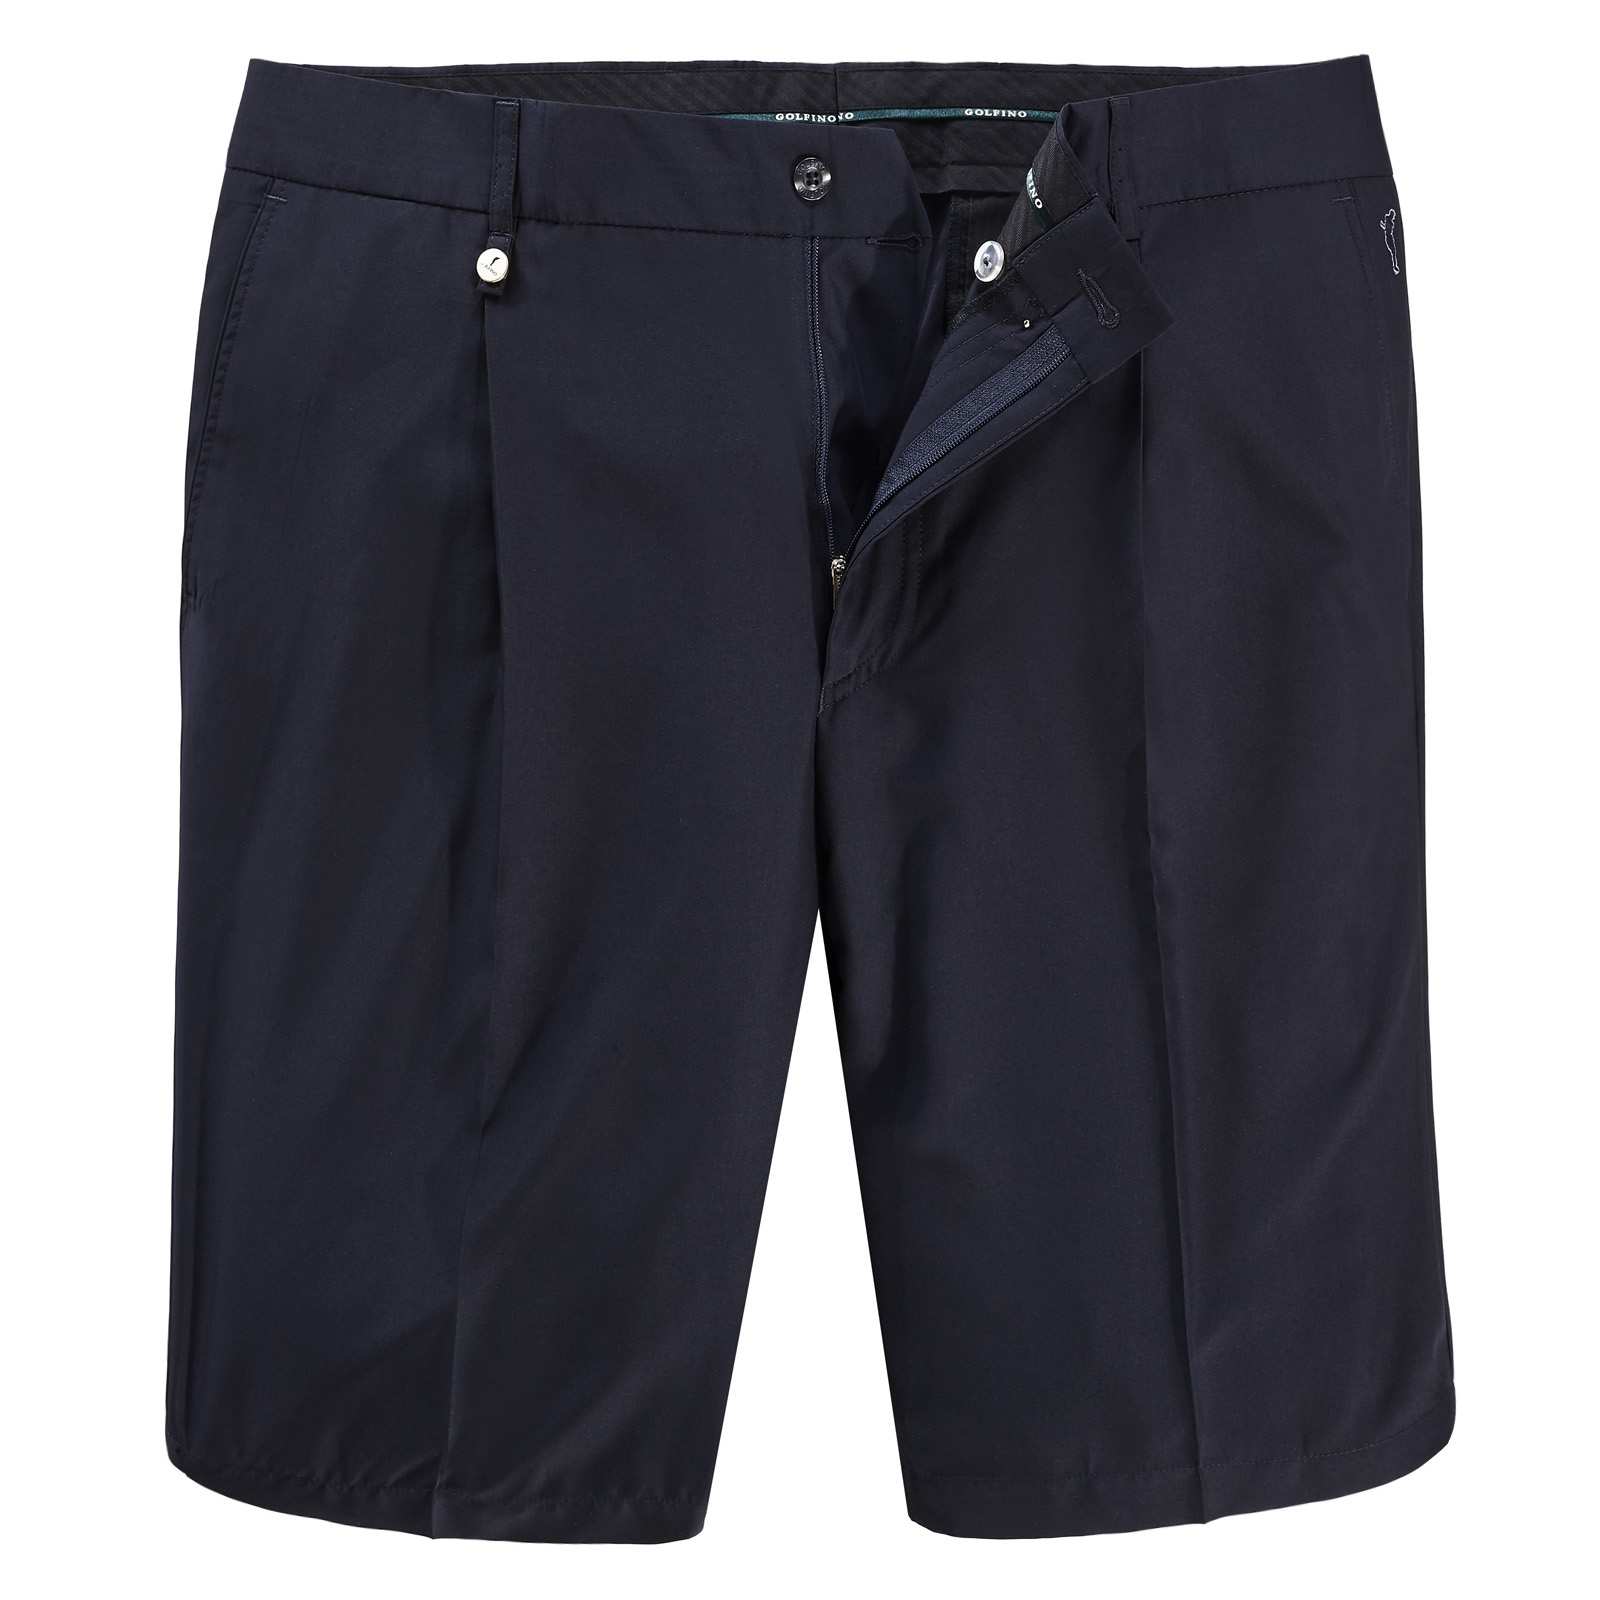 Men's Bermudas with logo detail